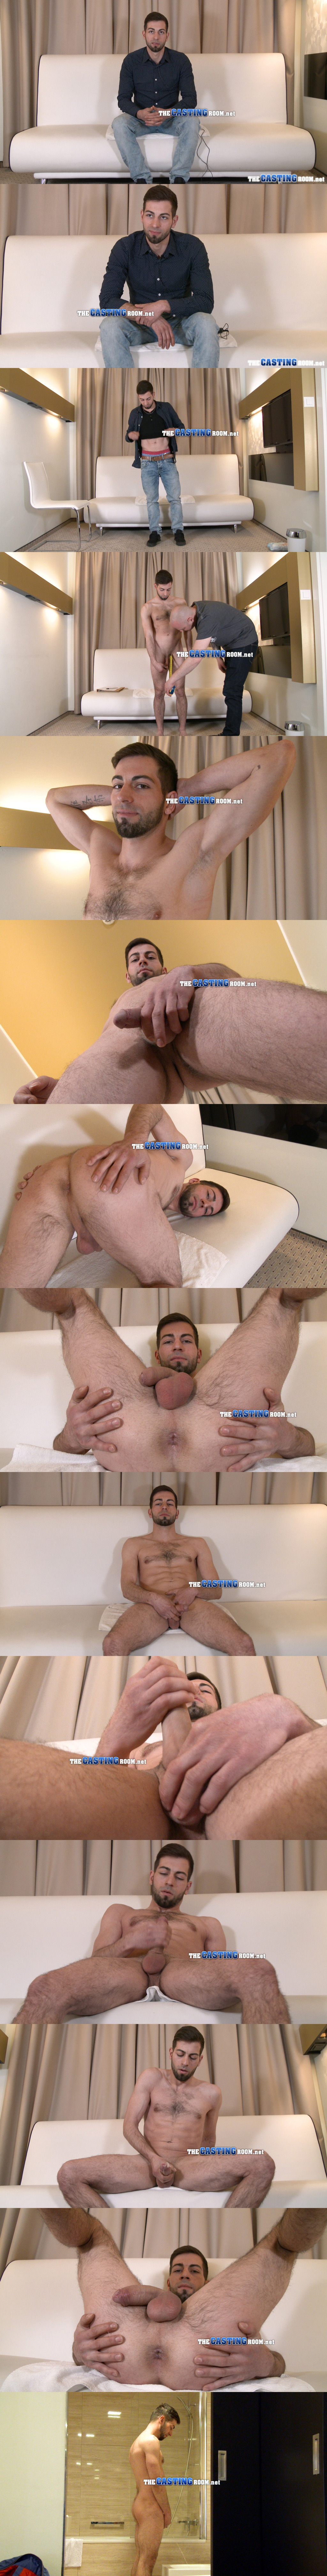 straight guy edward naked and jerking thecastingroom (FILEminimizer)